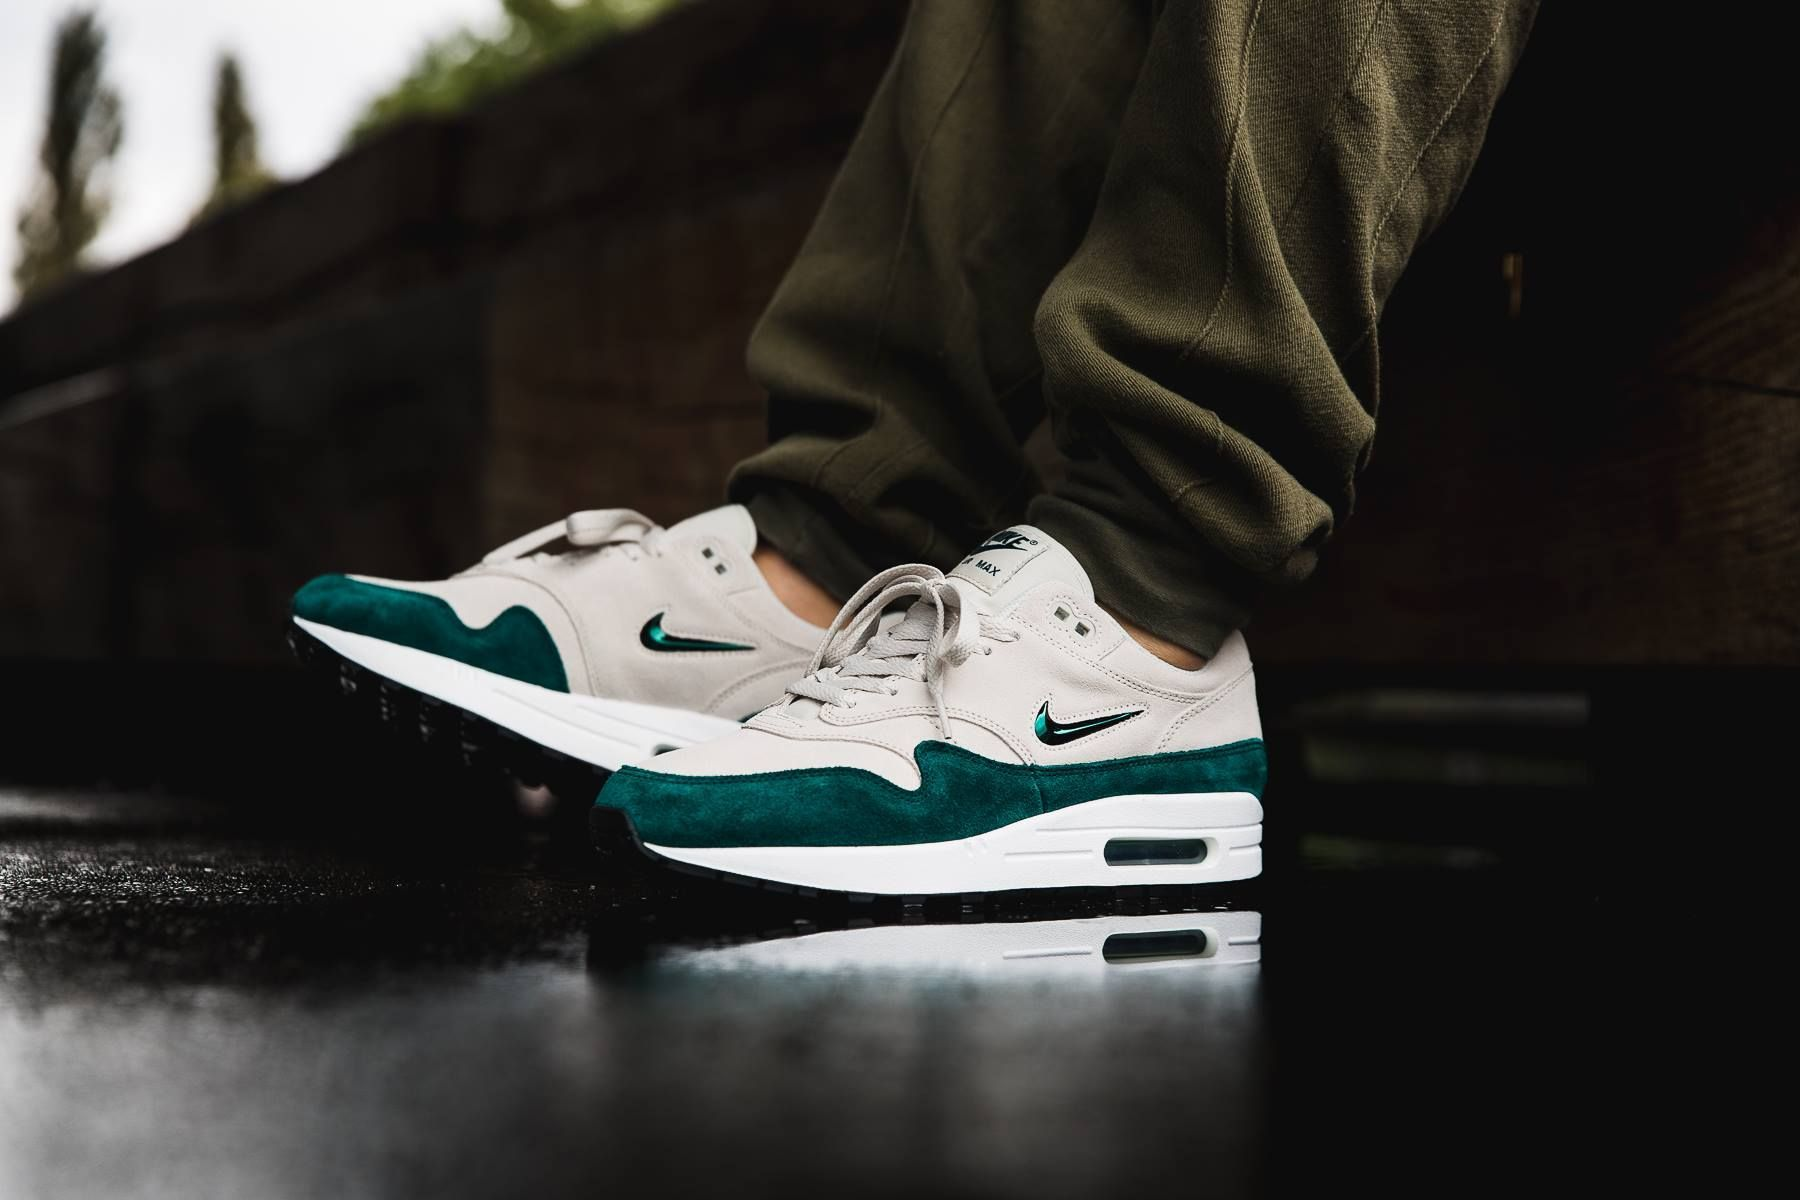 nike air max 1 jewel atomic teal nz